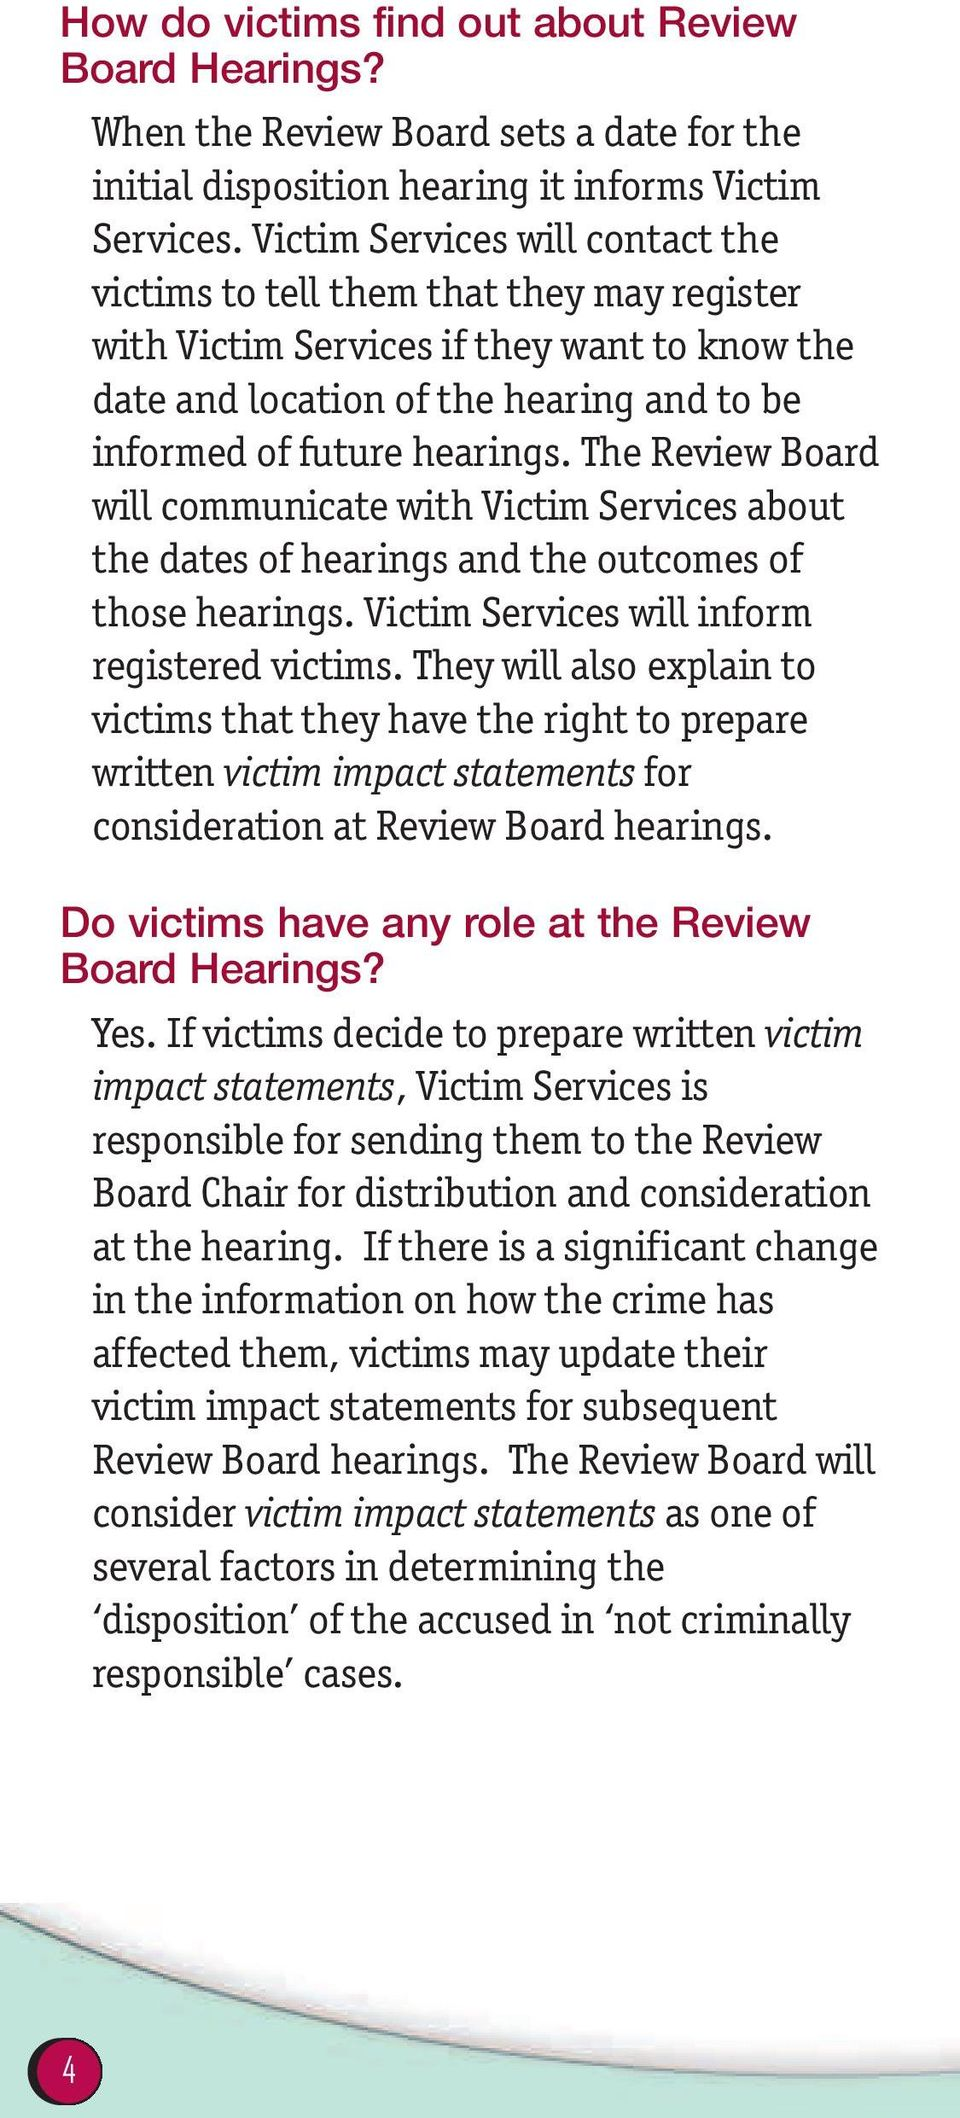 The Review Board will communicate with Victim Services about the dates of hearings and the outcomes of those hearings. Victim Services will inform registered victims.